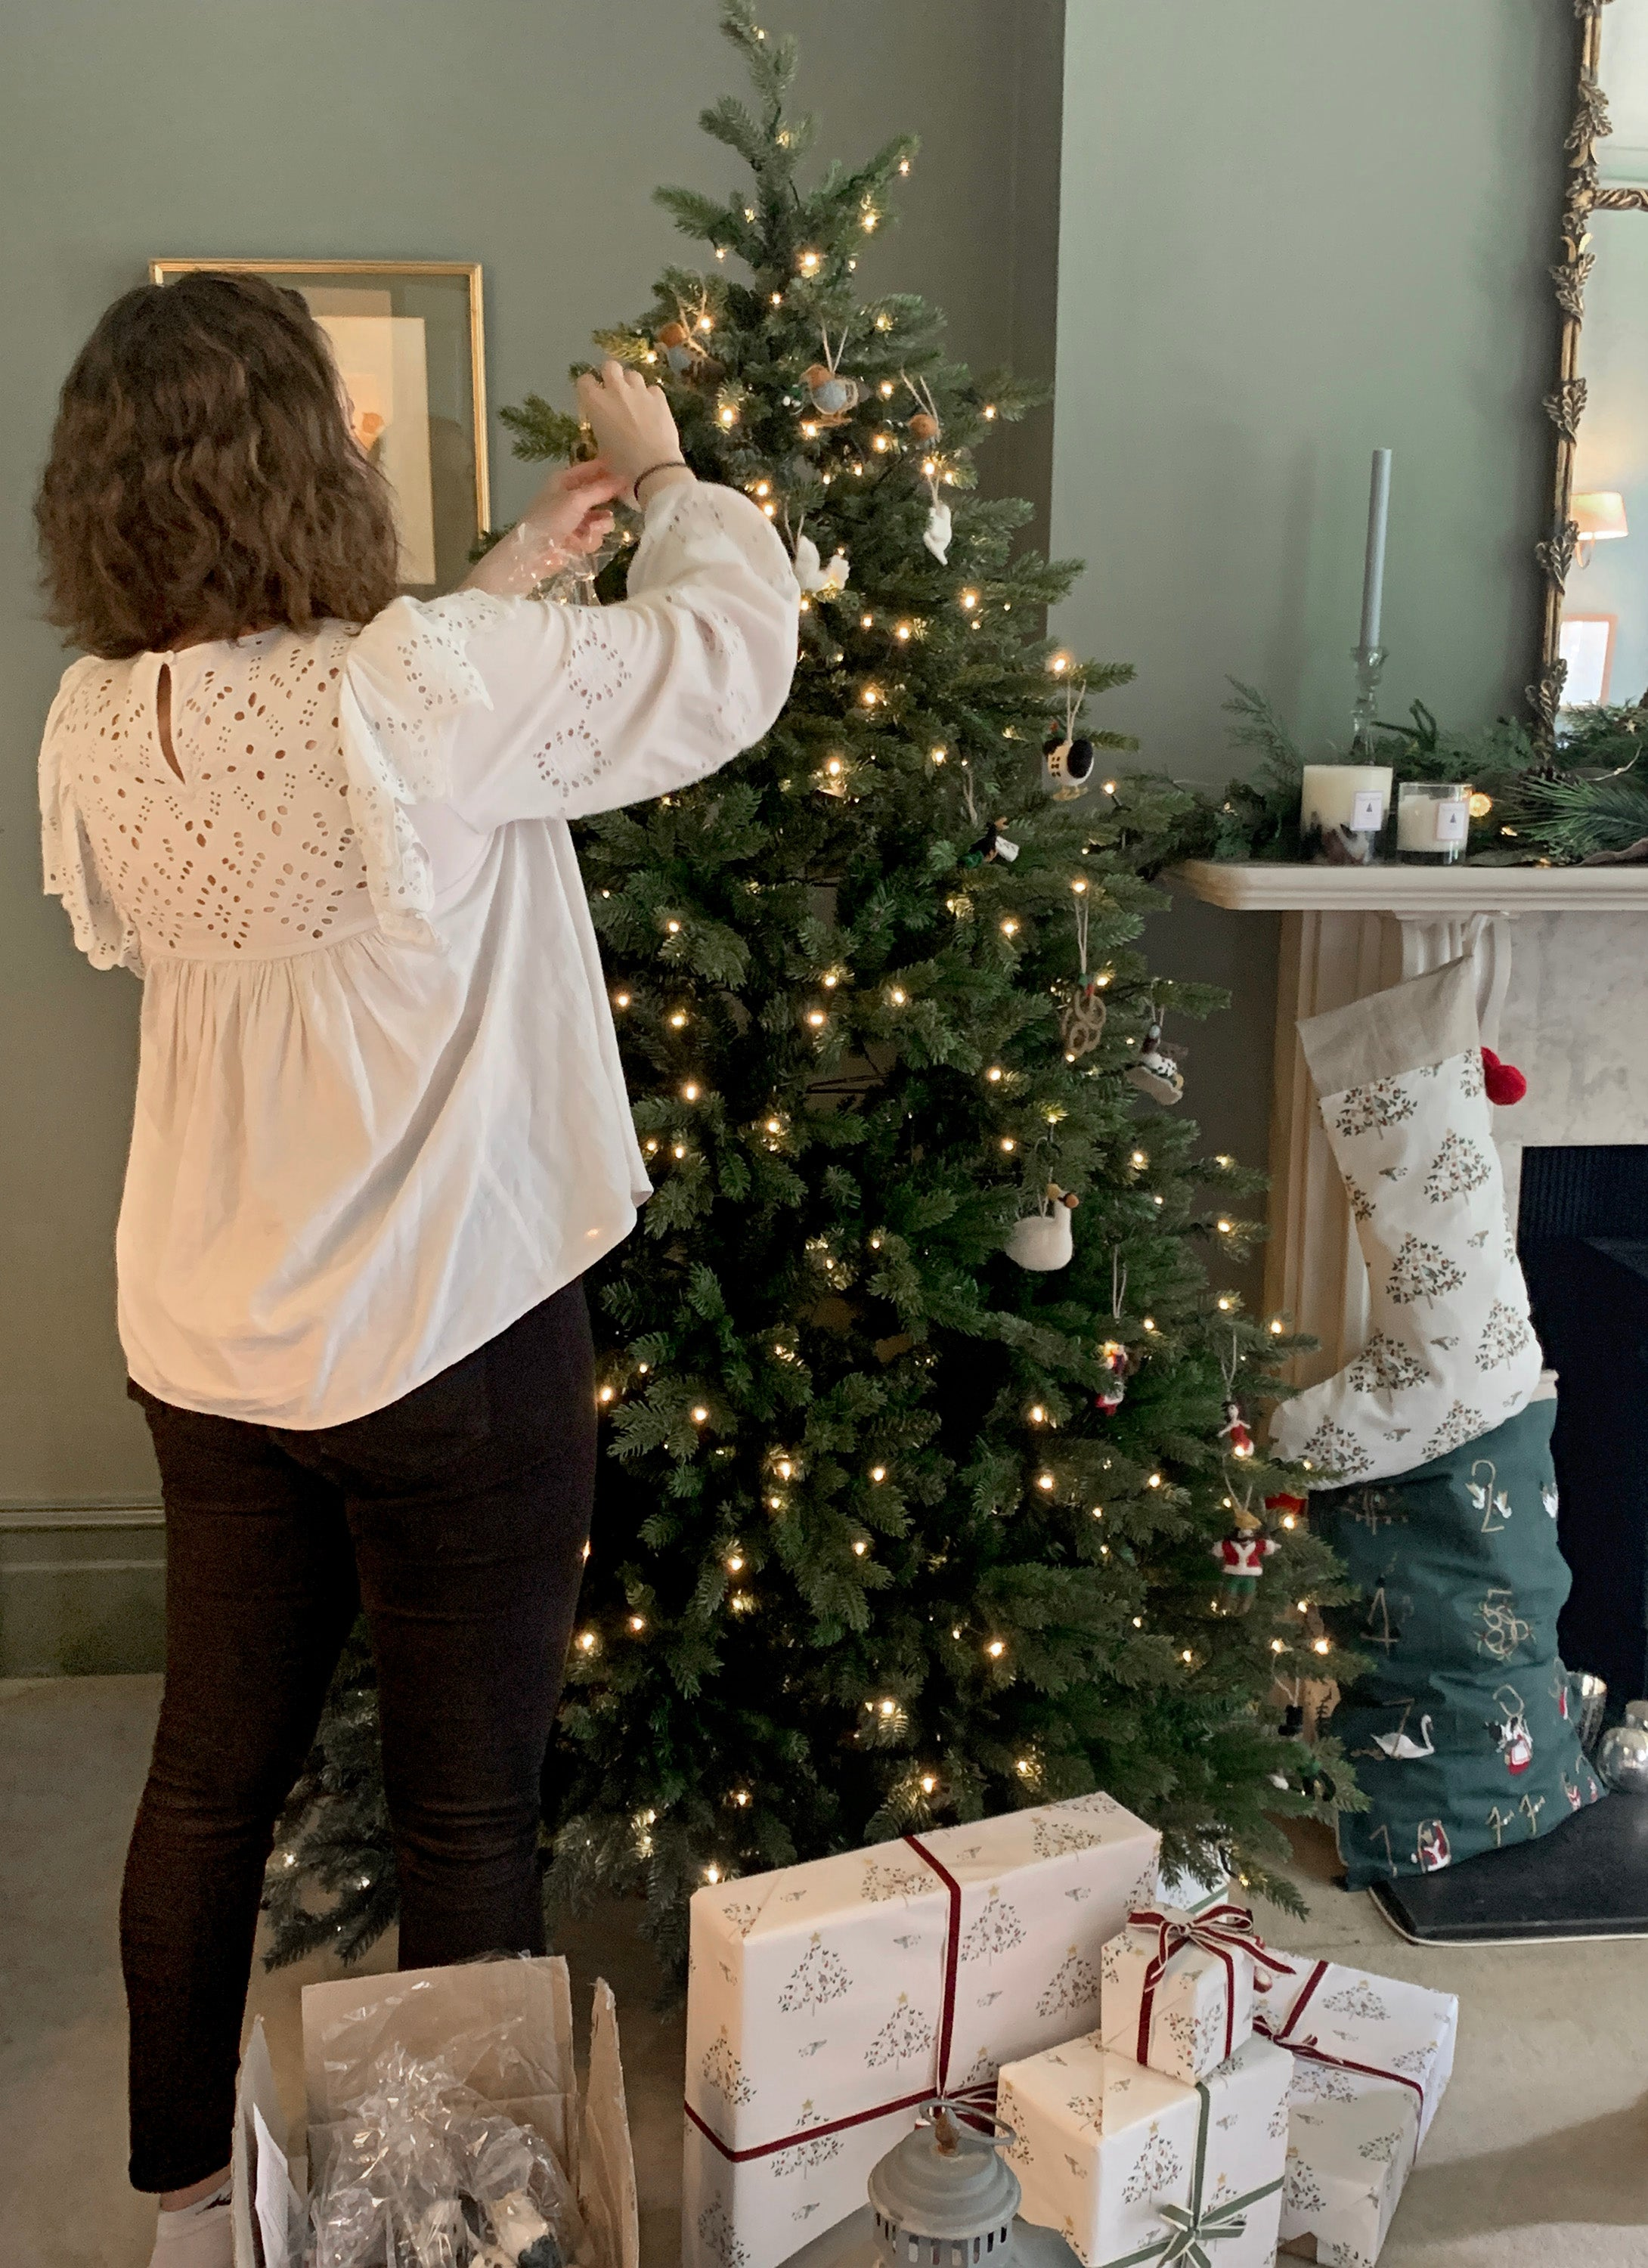 Photoshoot new Christmas collection by Sophie Allport